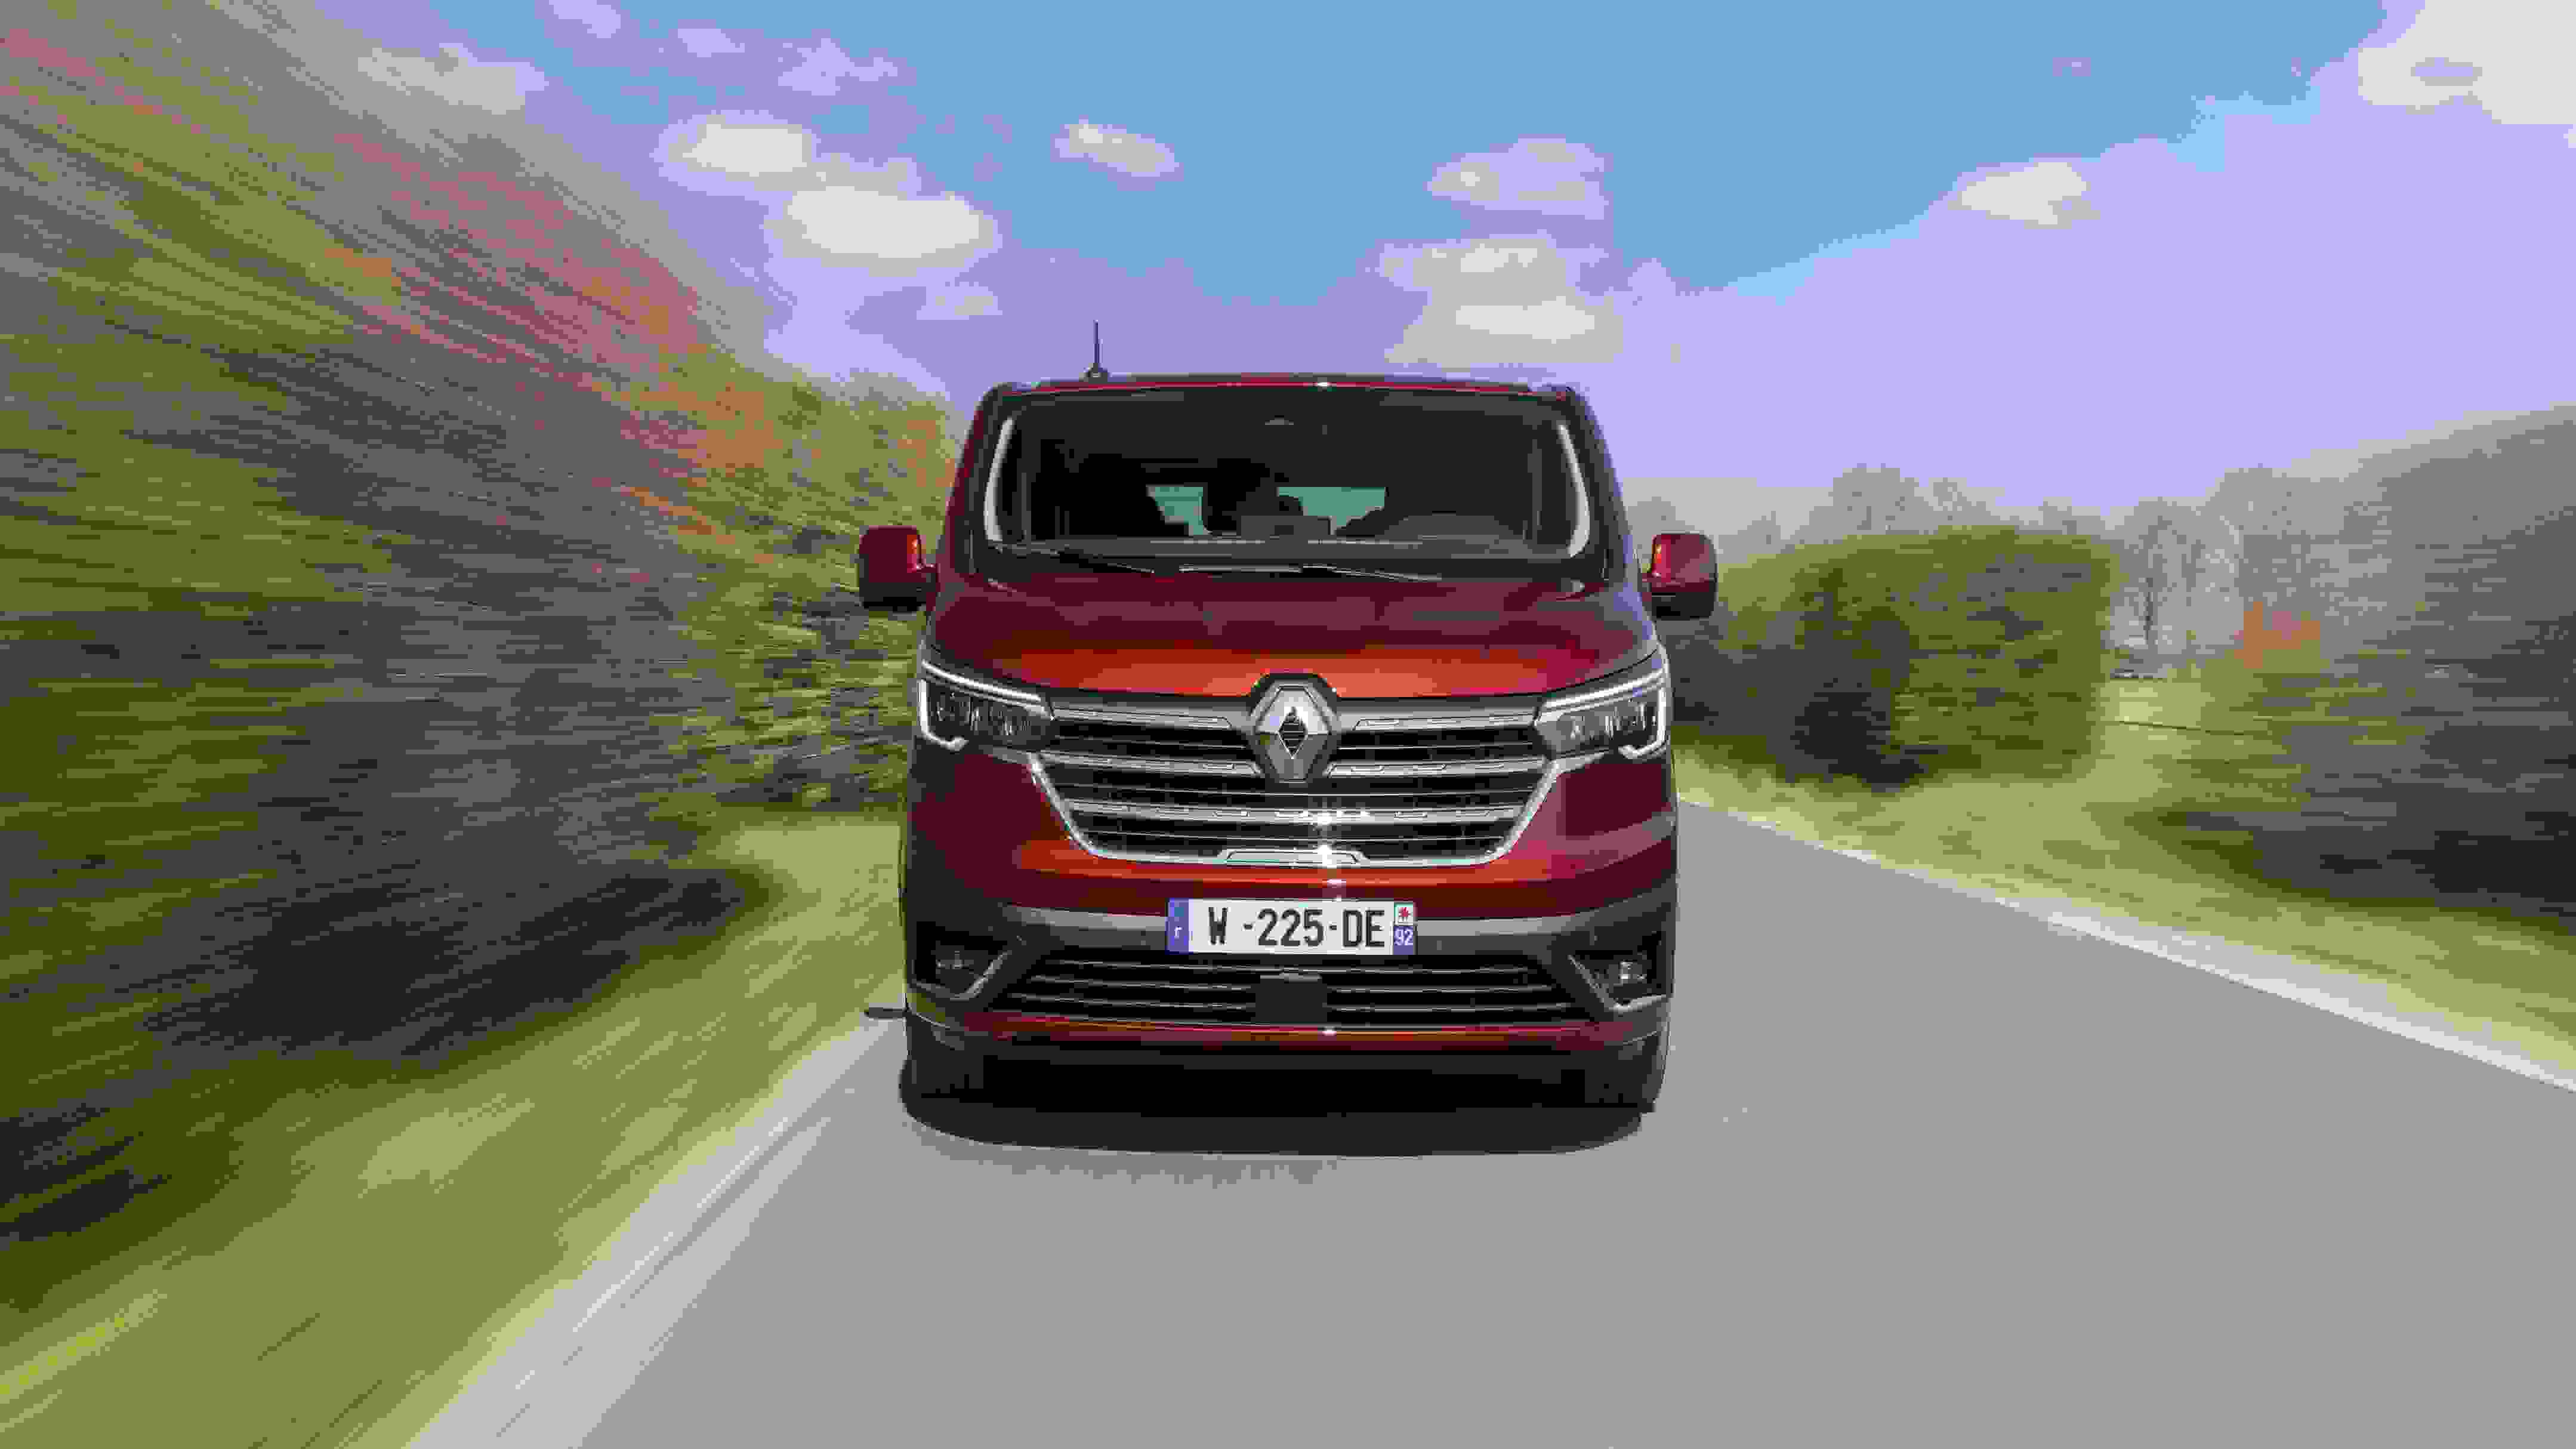 Renault Trafic Ext5